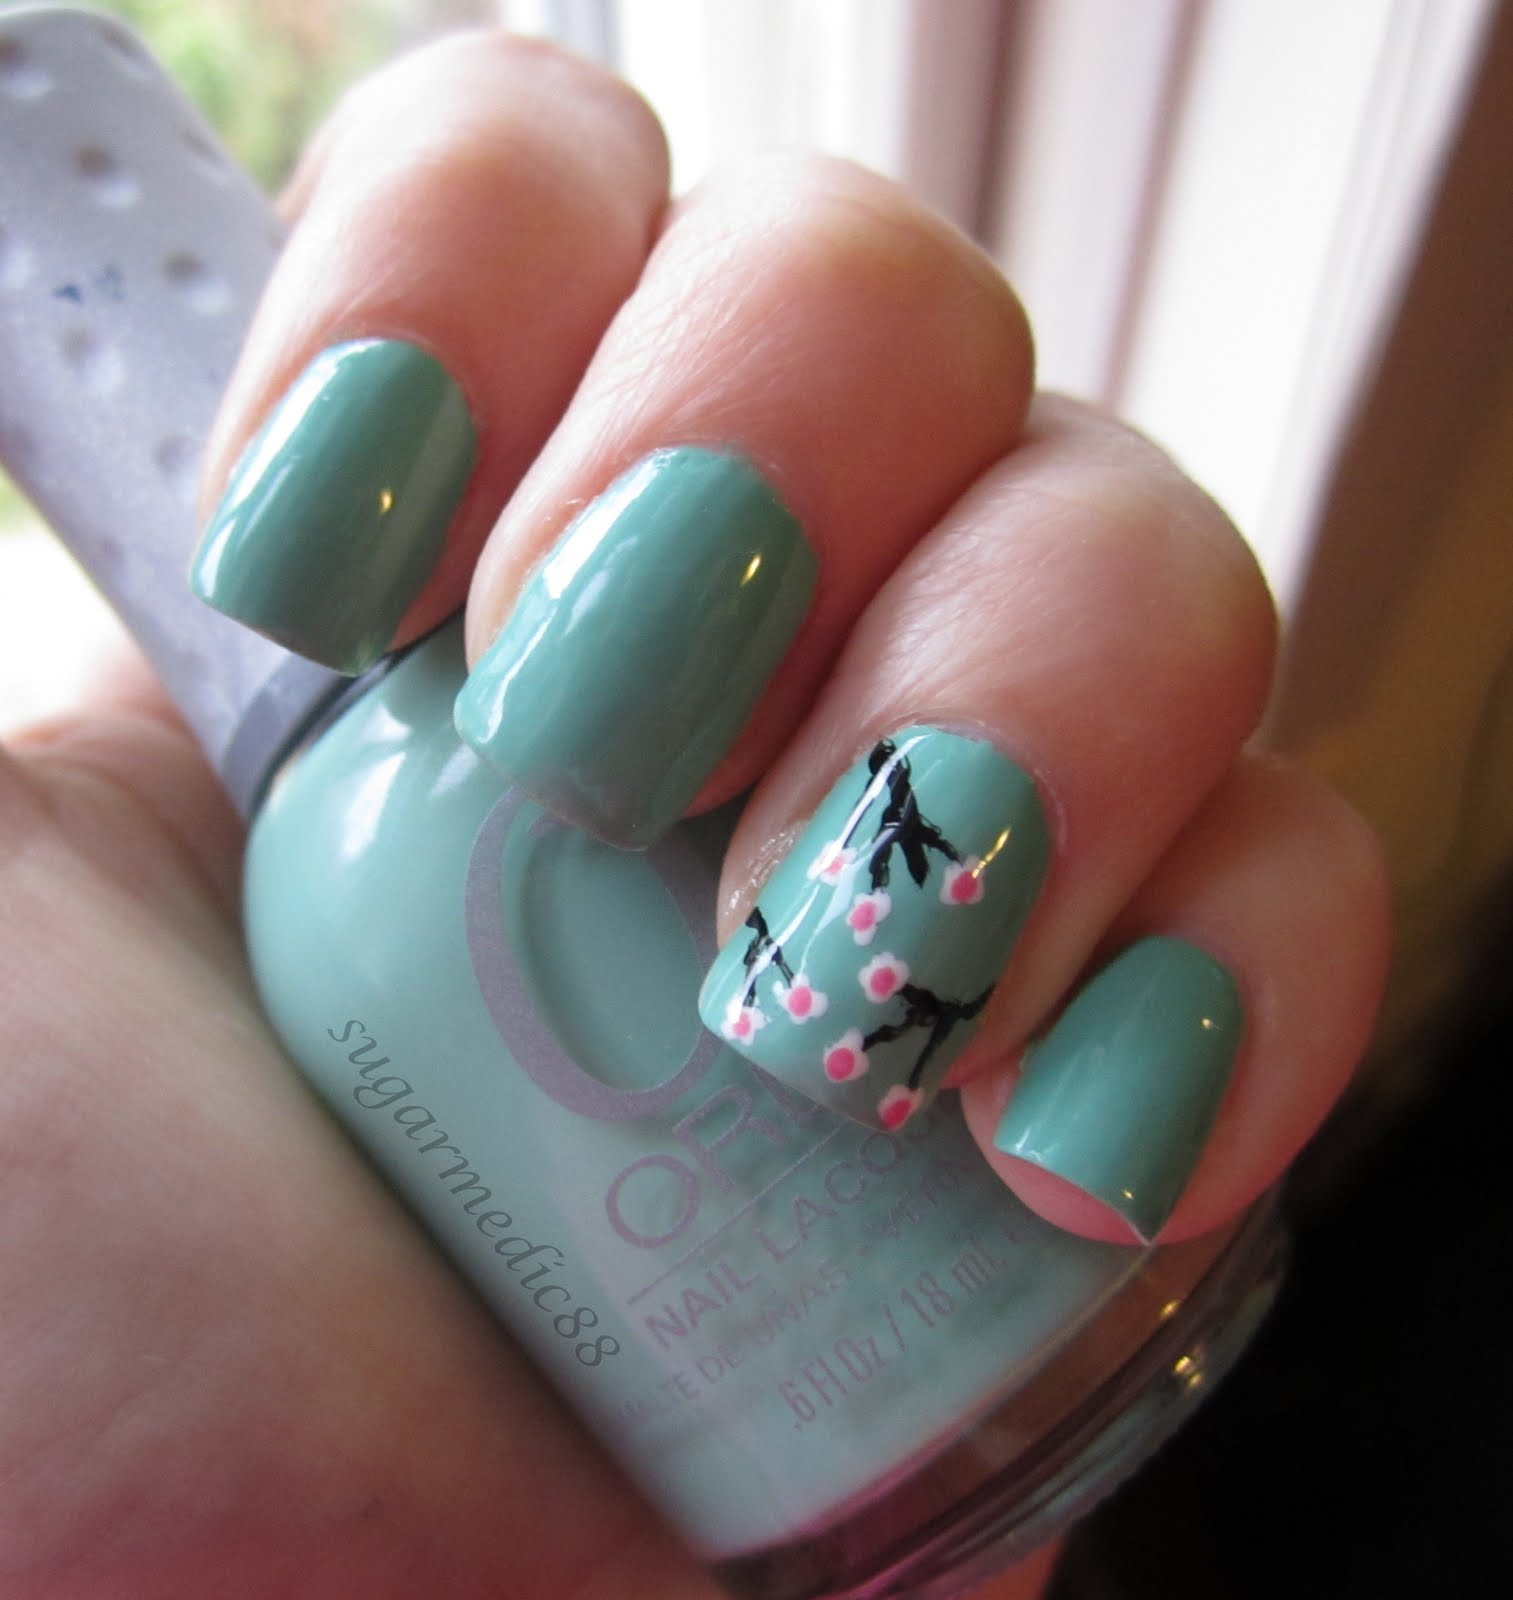 The Polished Medic: Orly Ancient Jade with Cherry Blossoms